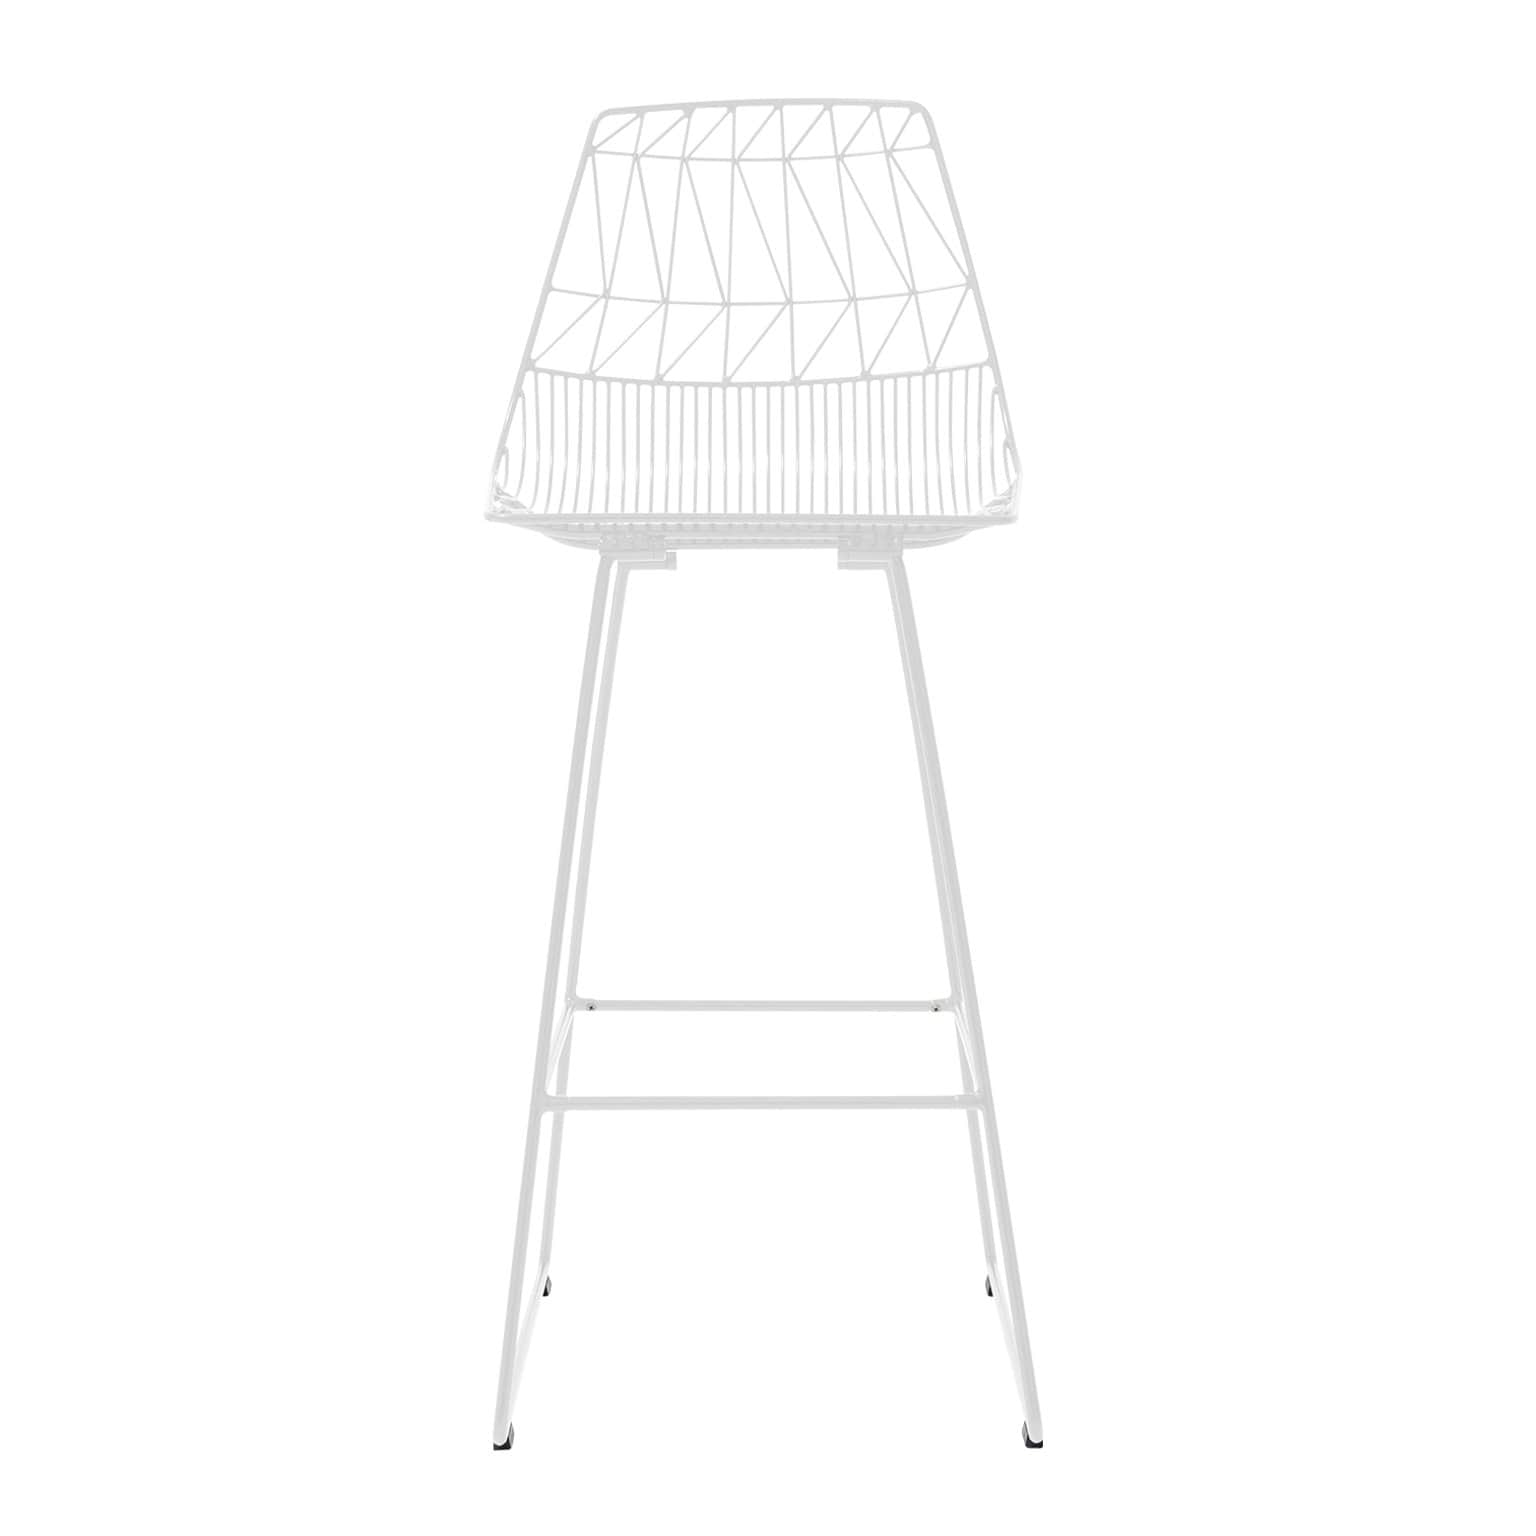 Bend Goods Furniture White Lucy Bar Stool